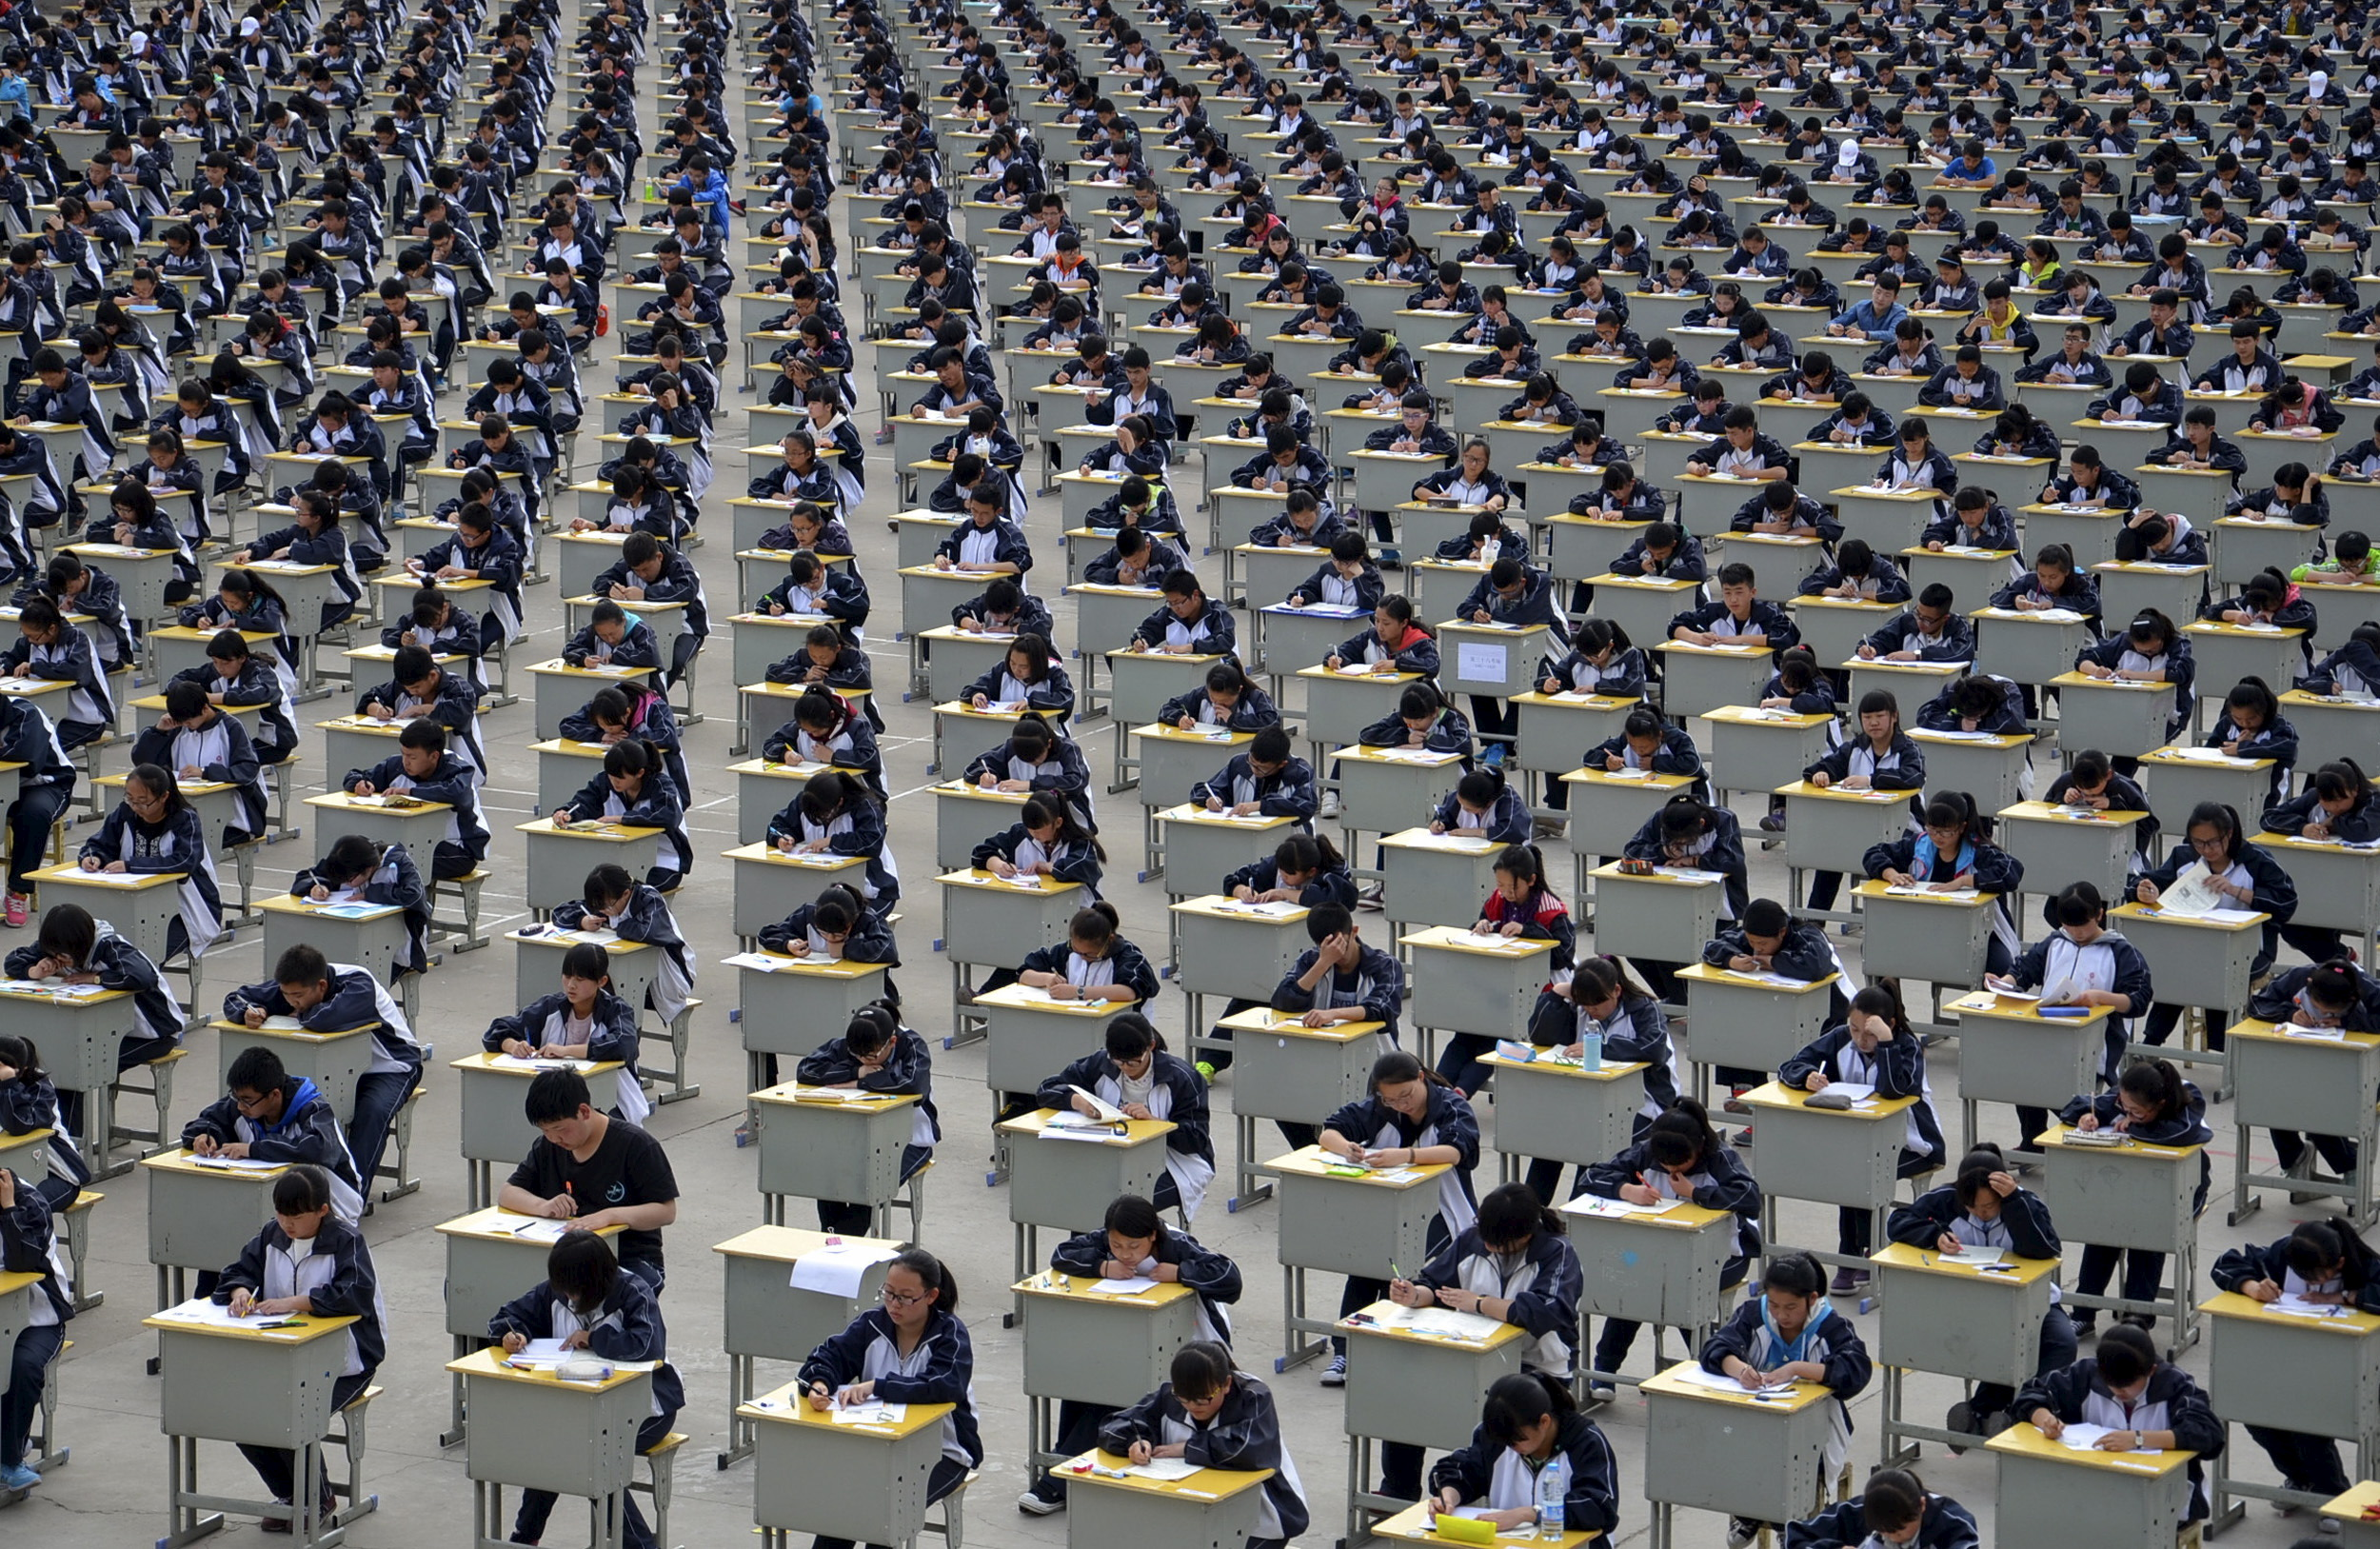 Students take an examination on an open-air playground at a high school in Yichuan, Shaanxi province April 11, 2015. More than 1,700 freshmen students took part in the exam on Saturday, which was the first attempt by the school to take it in open-air. The school said the reasons was due to the insufficient indoor space and also that it could be a test of the students' organizing capacity, local media reported.